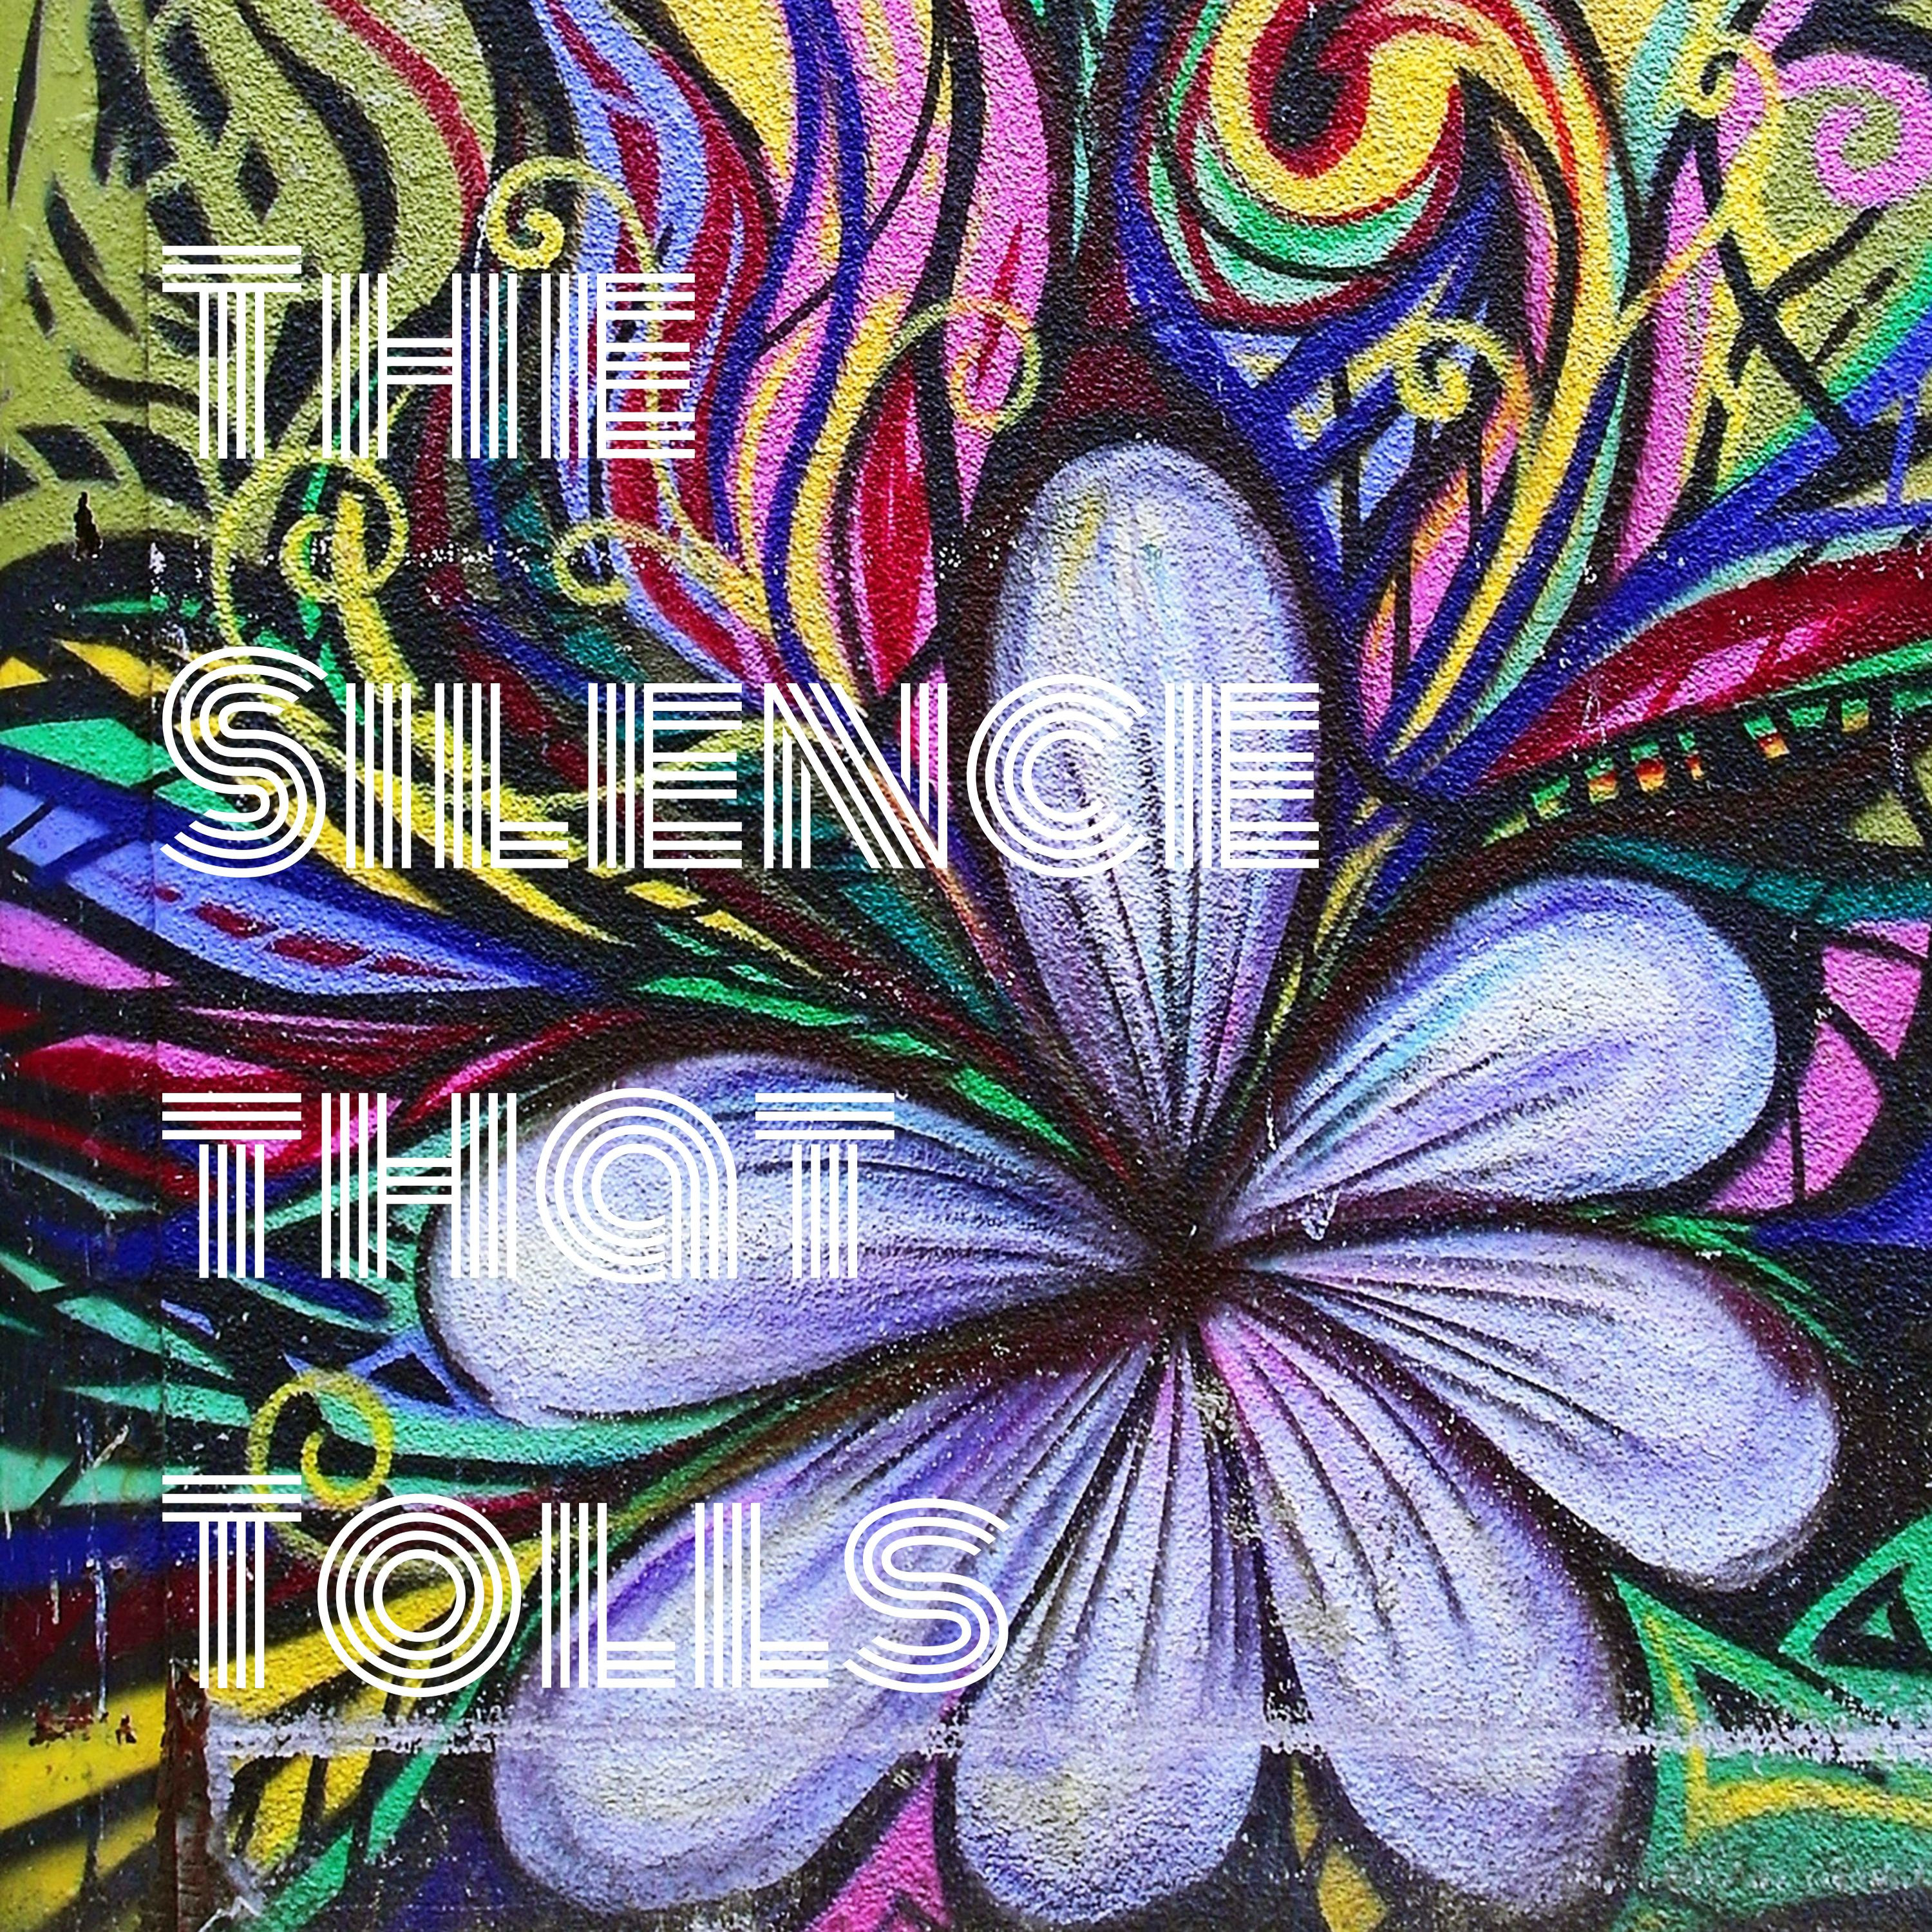 The Silence that Tolls